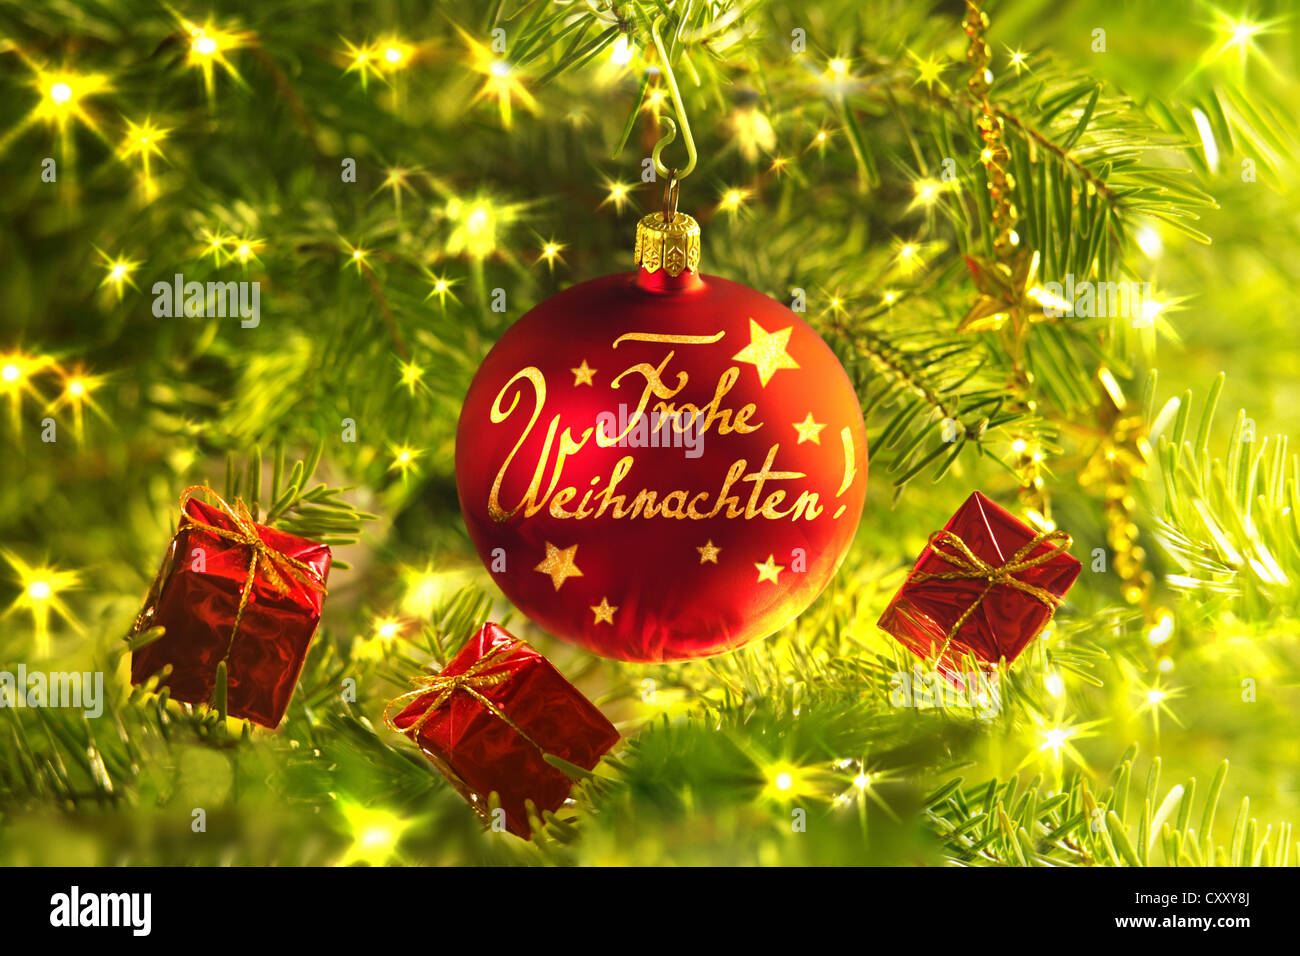 Red Christmas bauble with wording 'Merry Christmas' and small gift packs - Stock Image